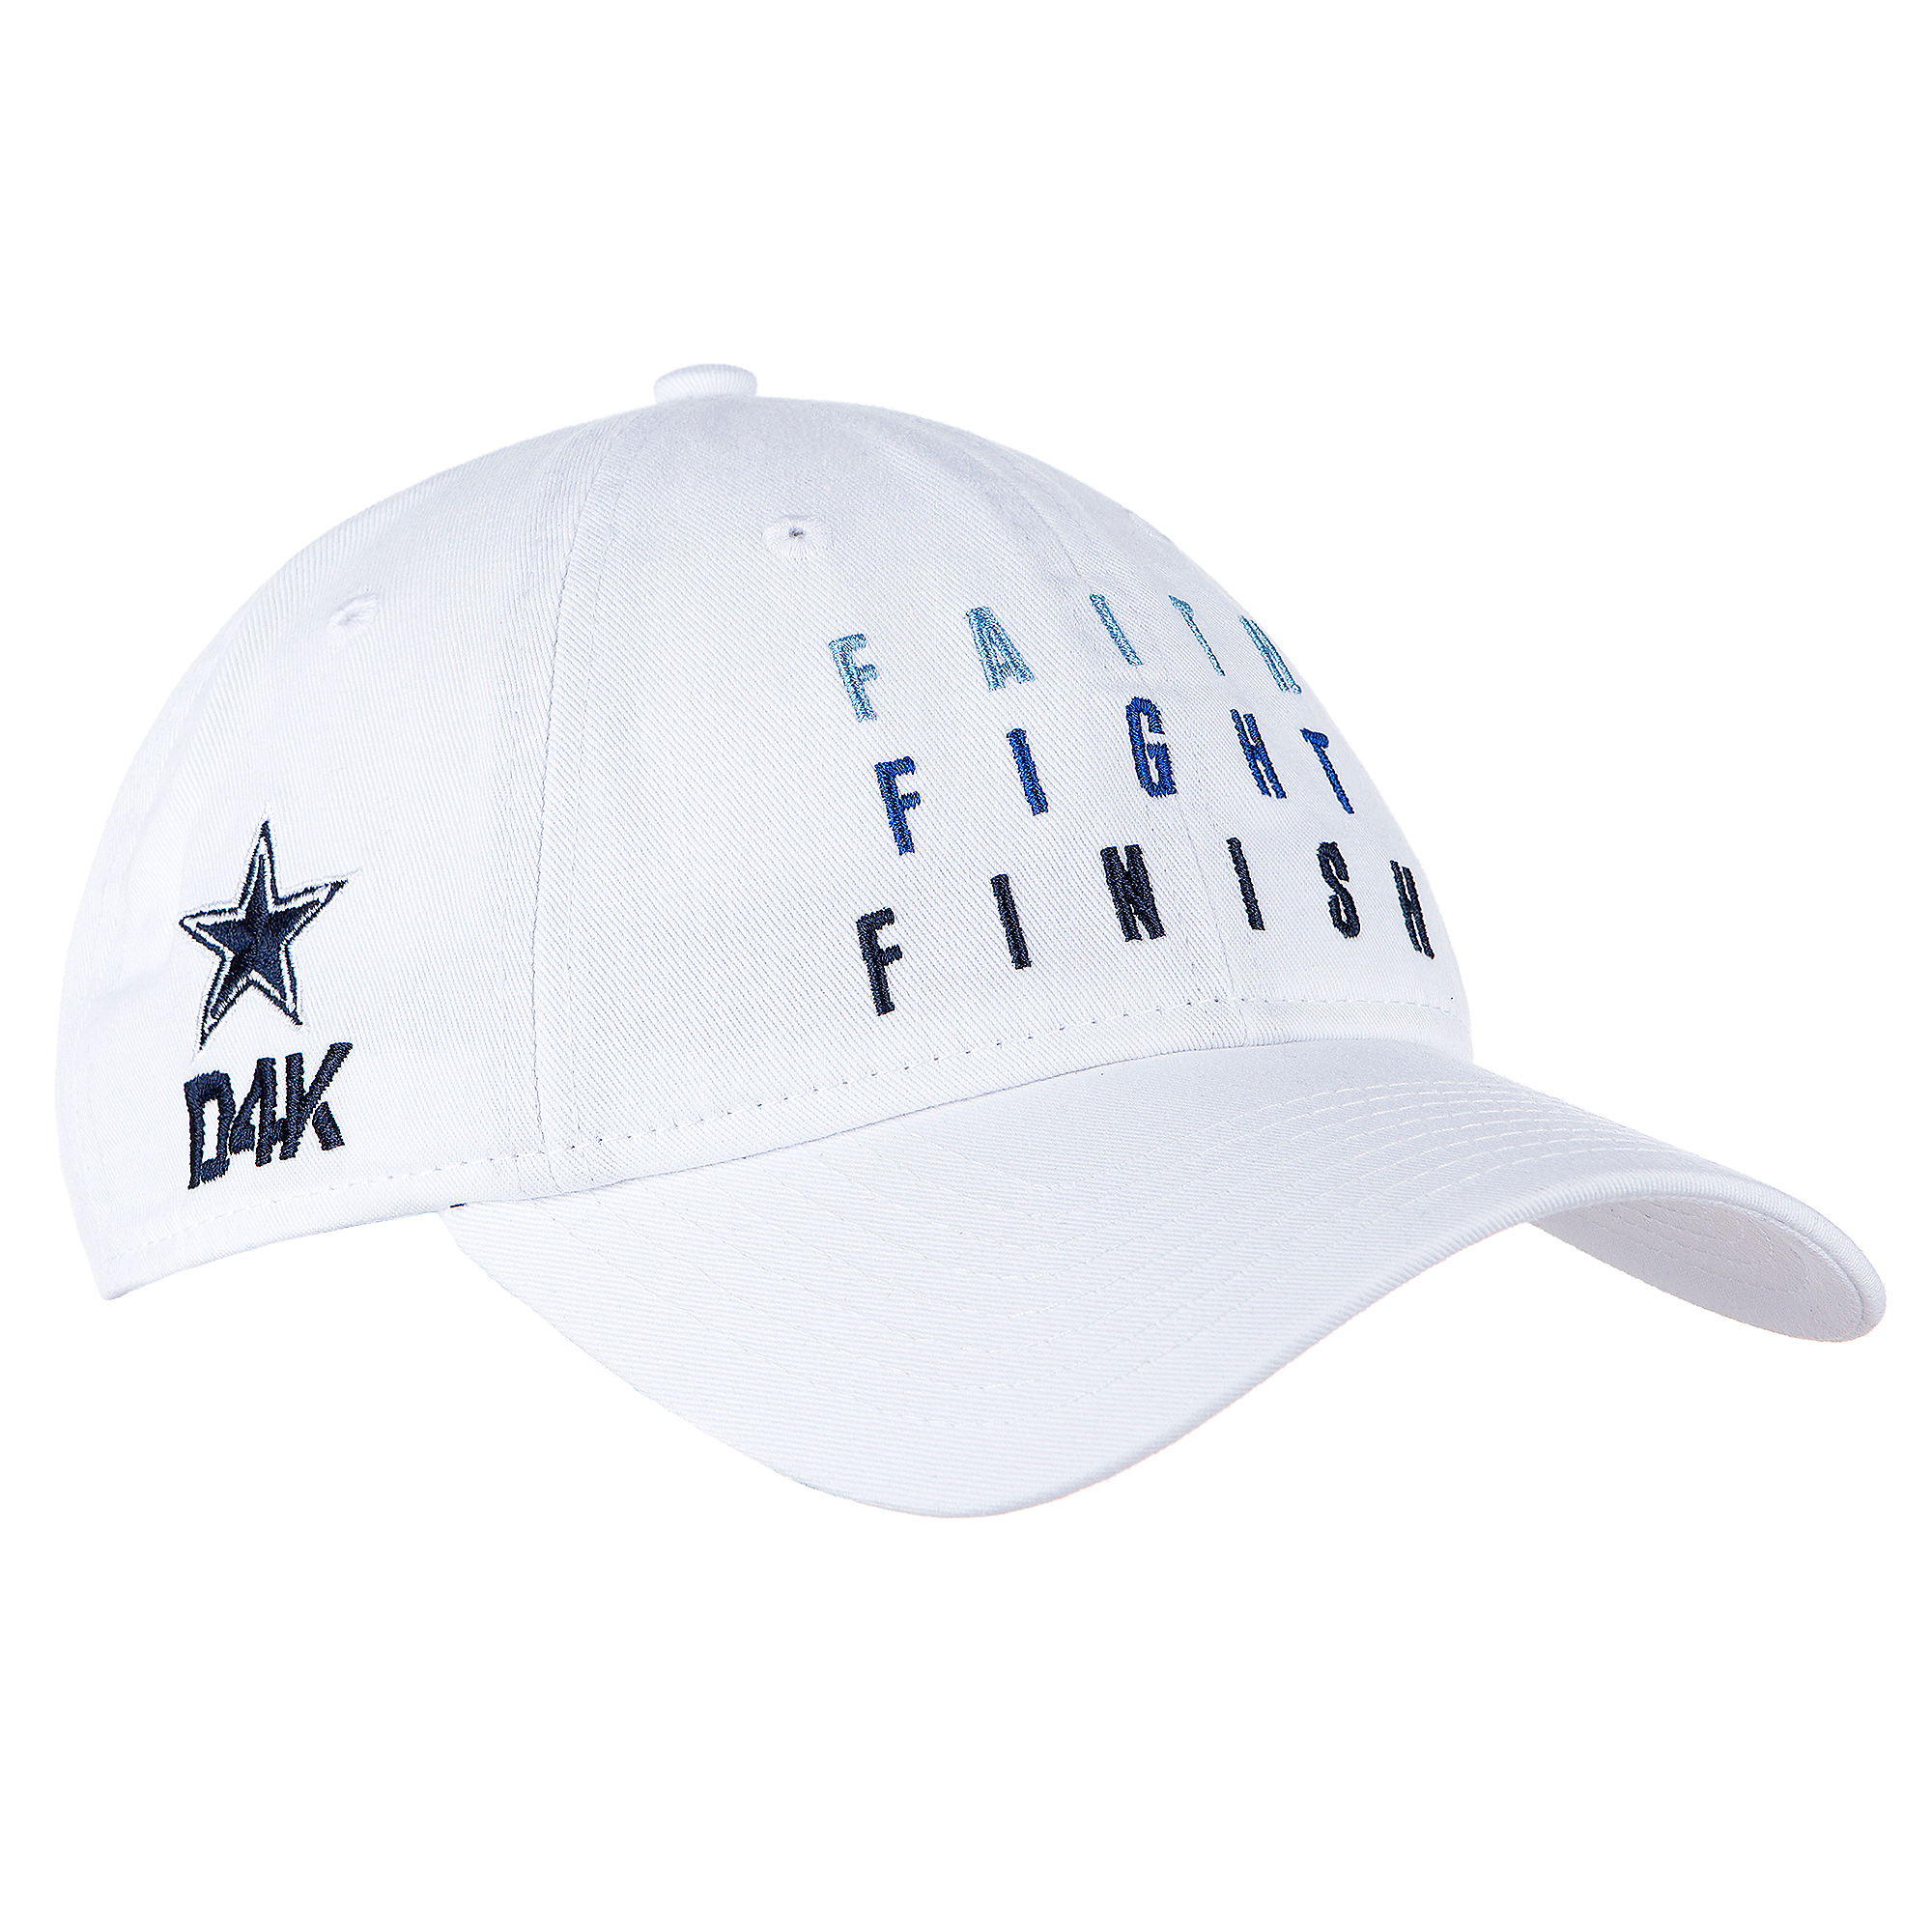 Dallas Cowboys New Era Womens White Faith Fight Finish 9Twenty Cap